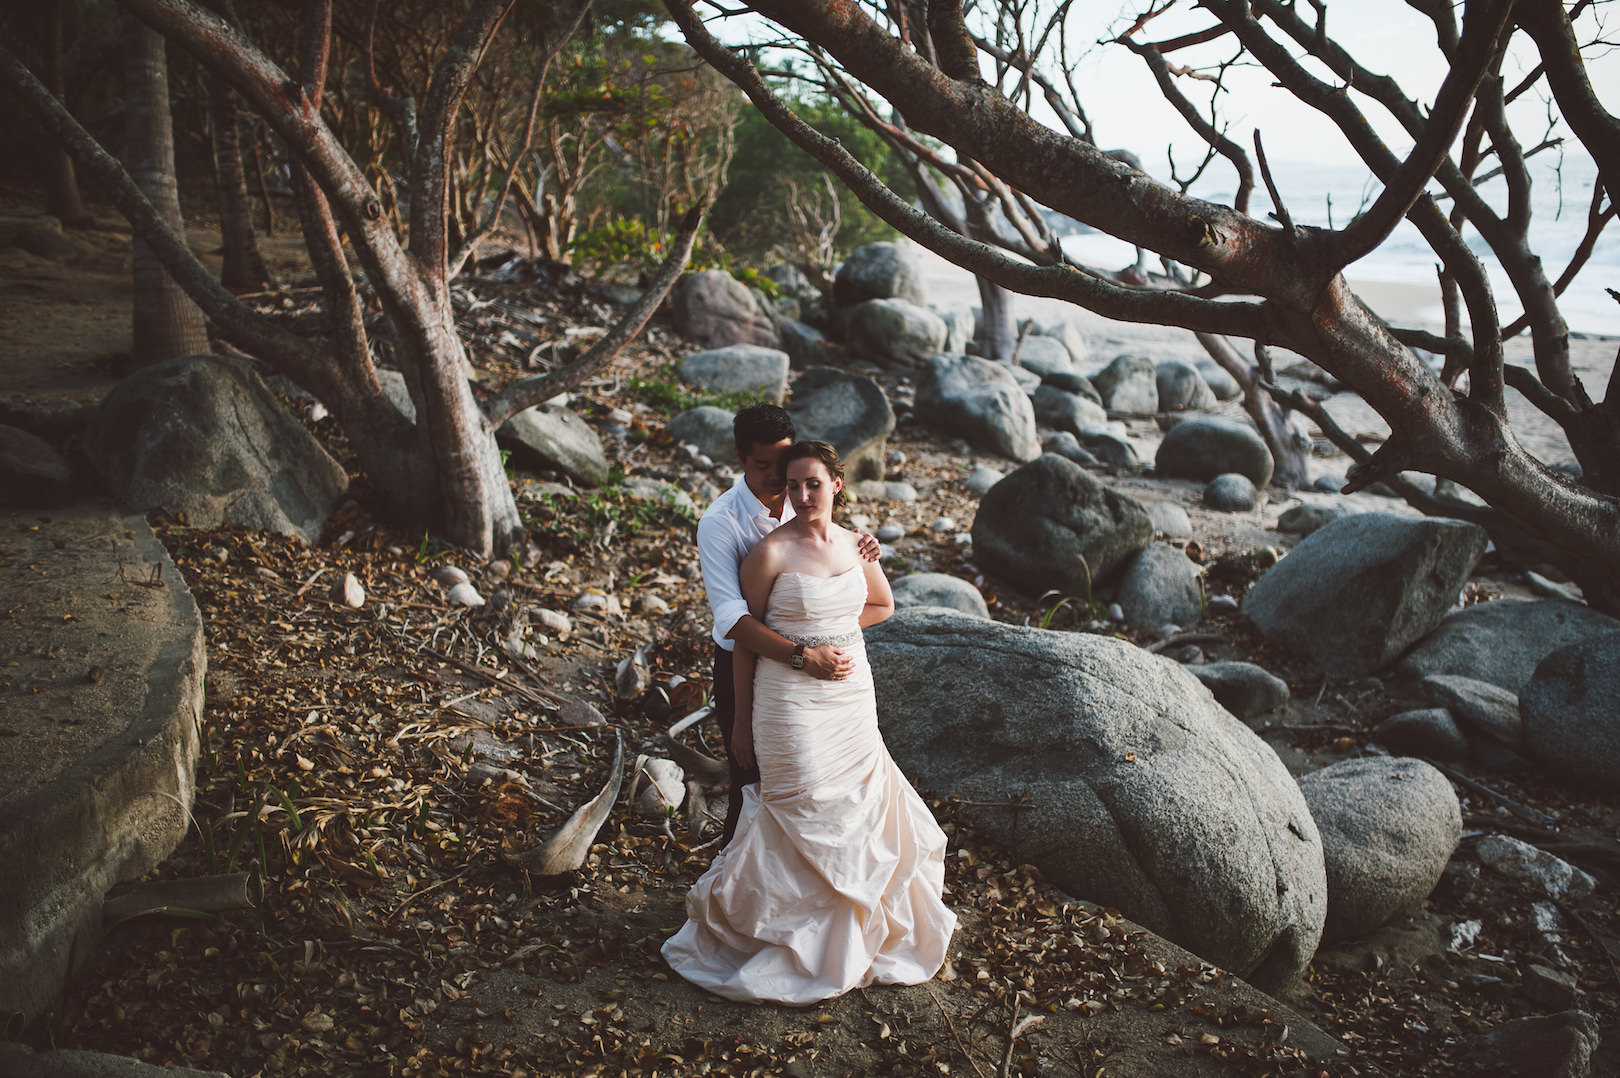 Steve & Mika - Sayulita - © Dallas Kolotylo Photography - 846